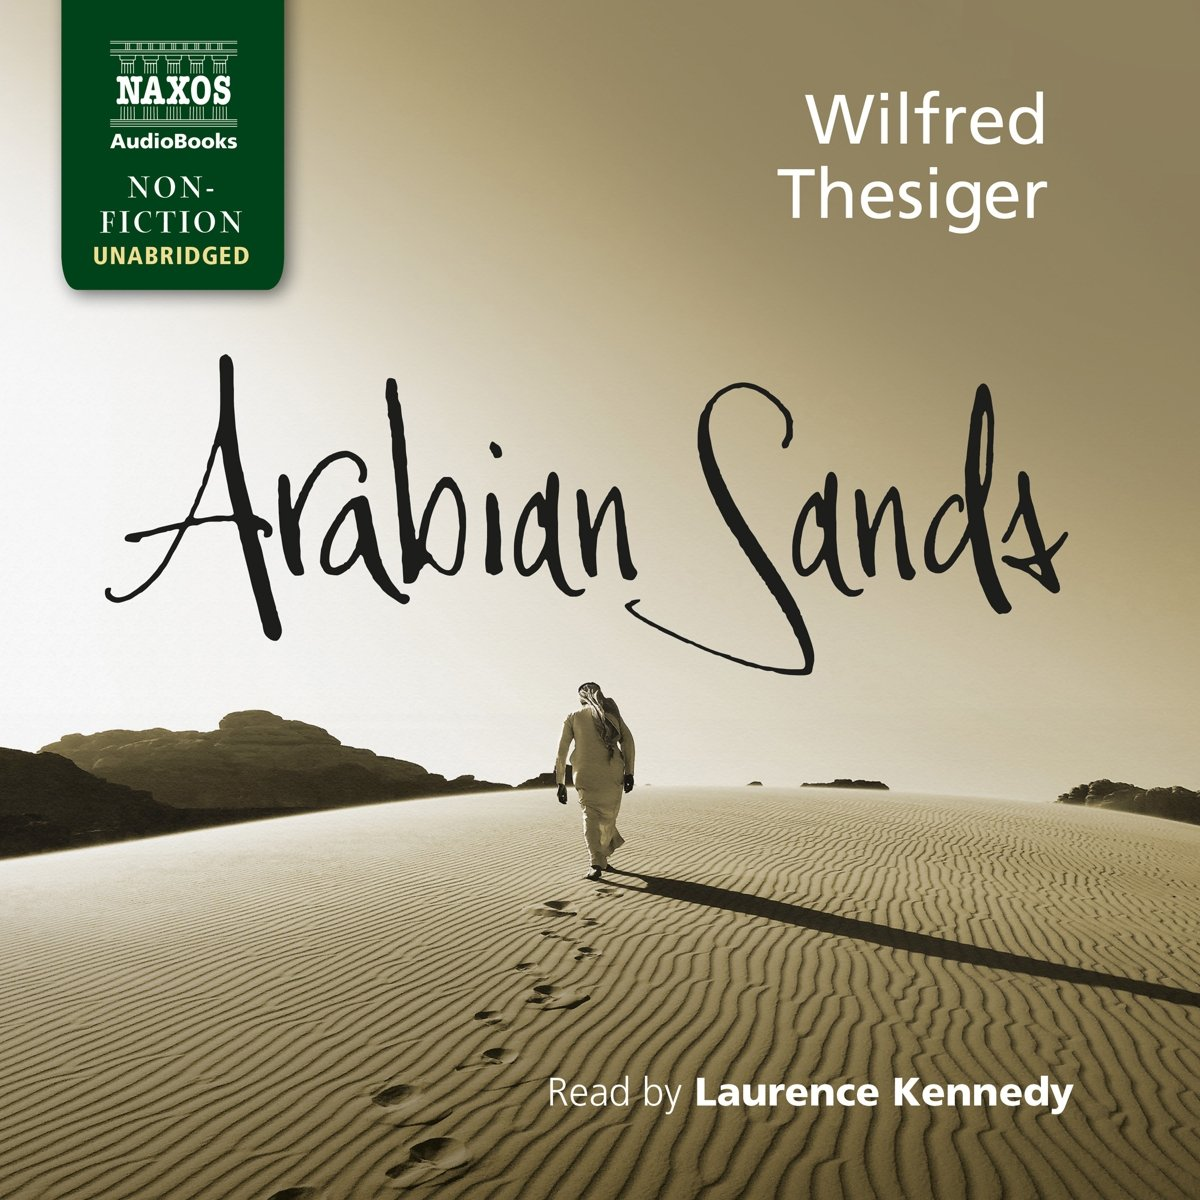 Arabian Sands by Naxos AudioBooks